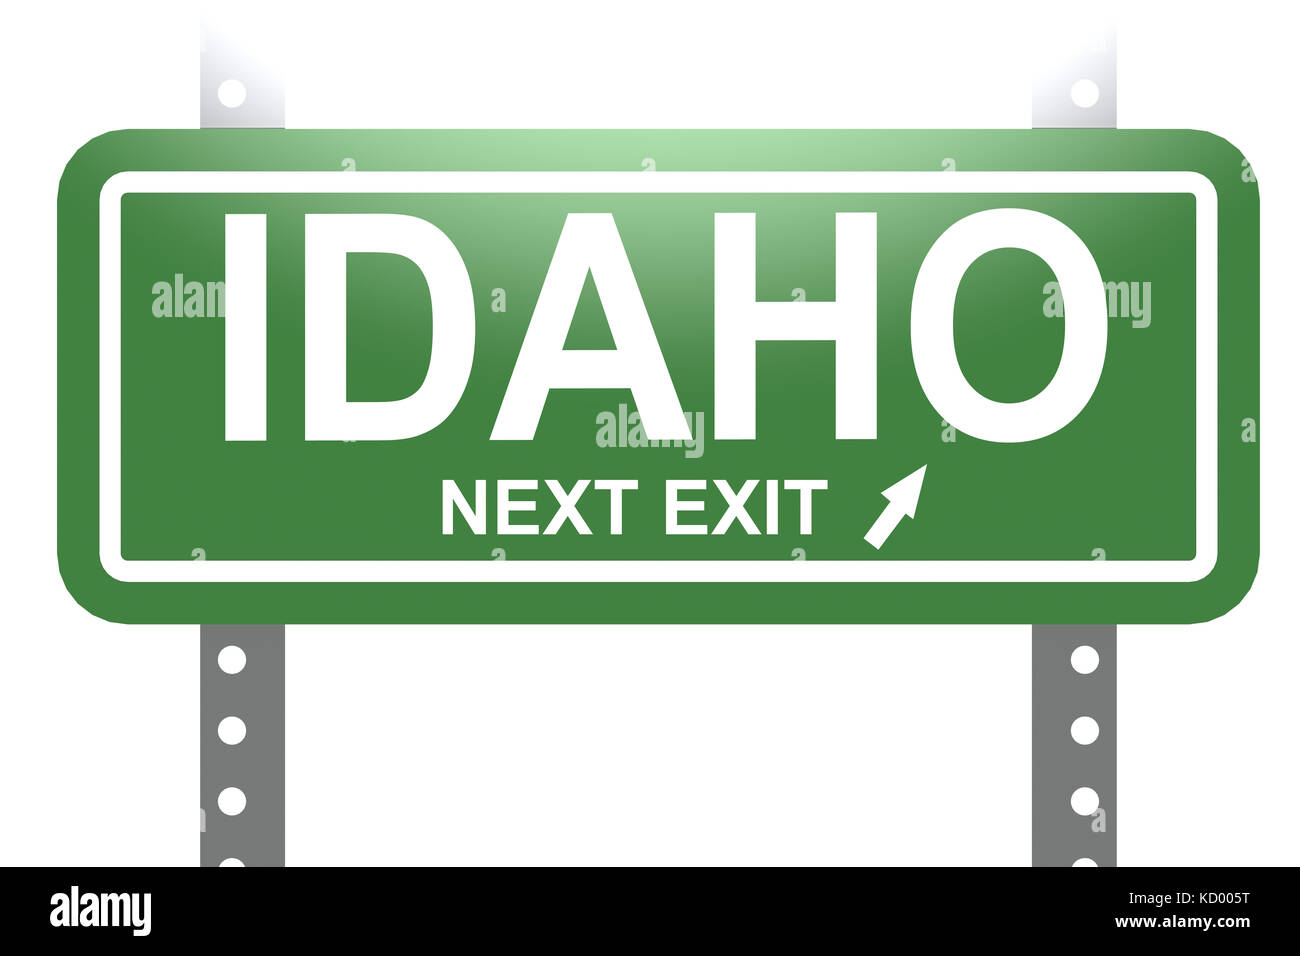 Idaho green sign board isolated image with hi-res rendered artwork that could be used for any graphic design. - Stock Image